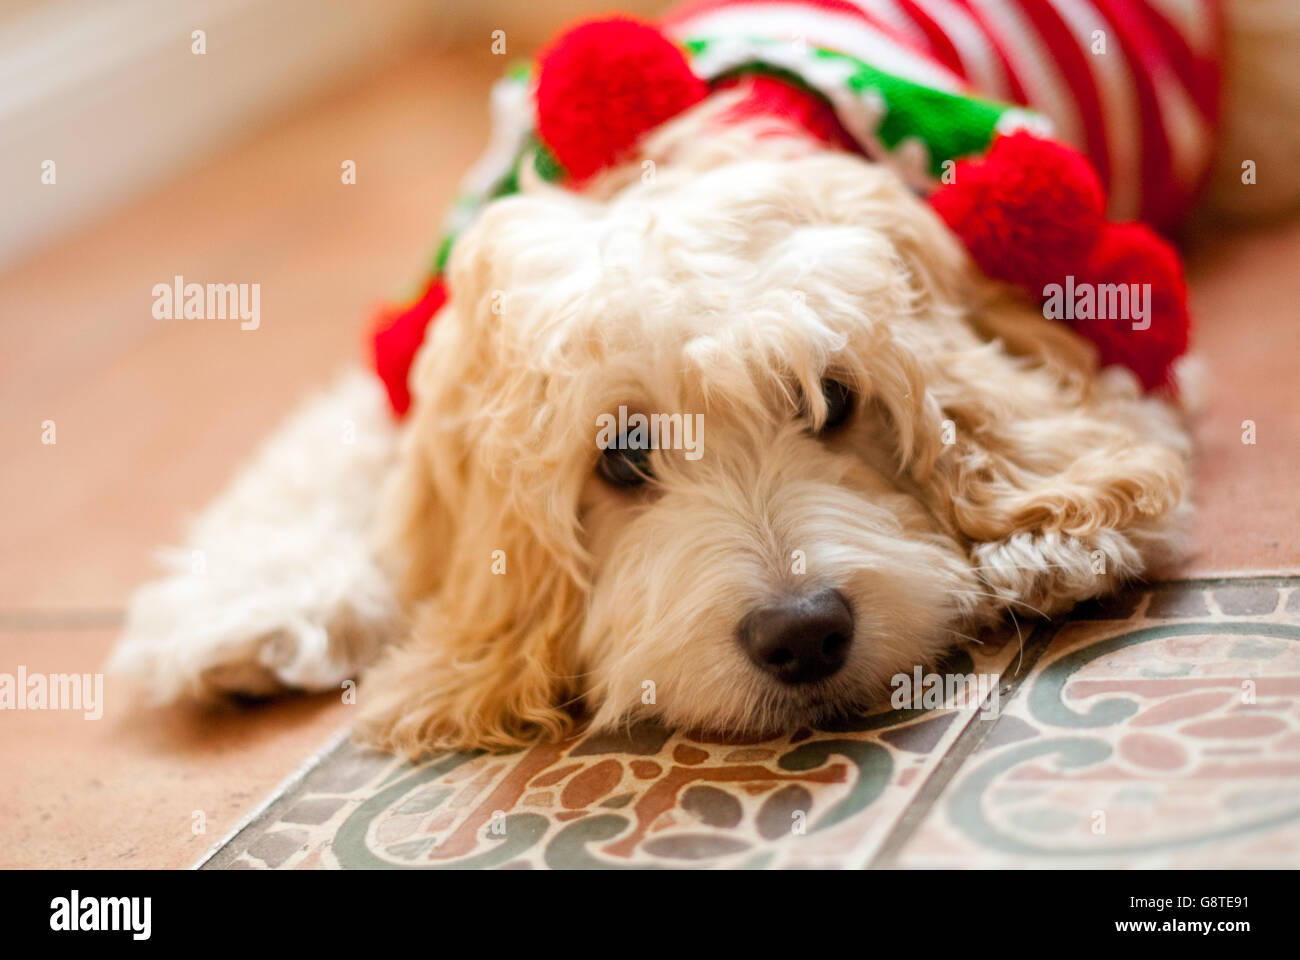 Dog portrait - Cockapoo with Christmas outfit - Stock Image